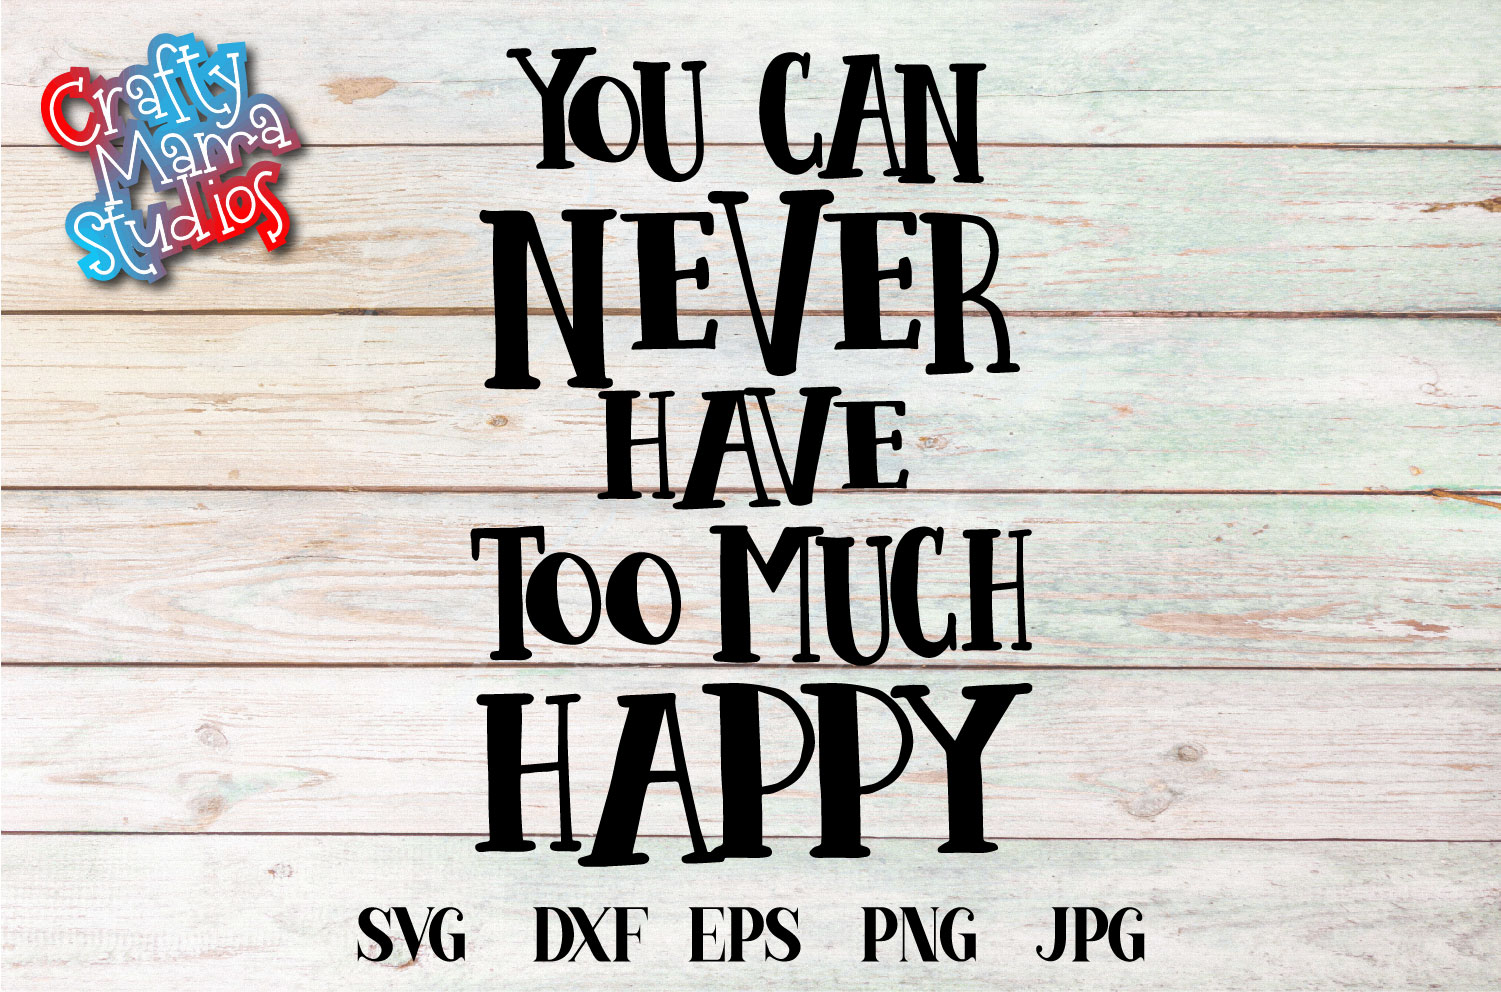 You Can Never Have Too Much Happy SVG, Sublimation, PNG EPS example image 2